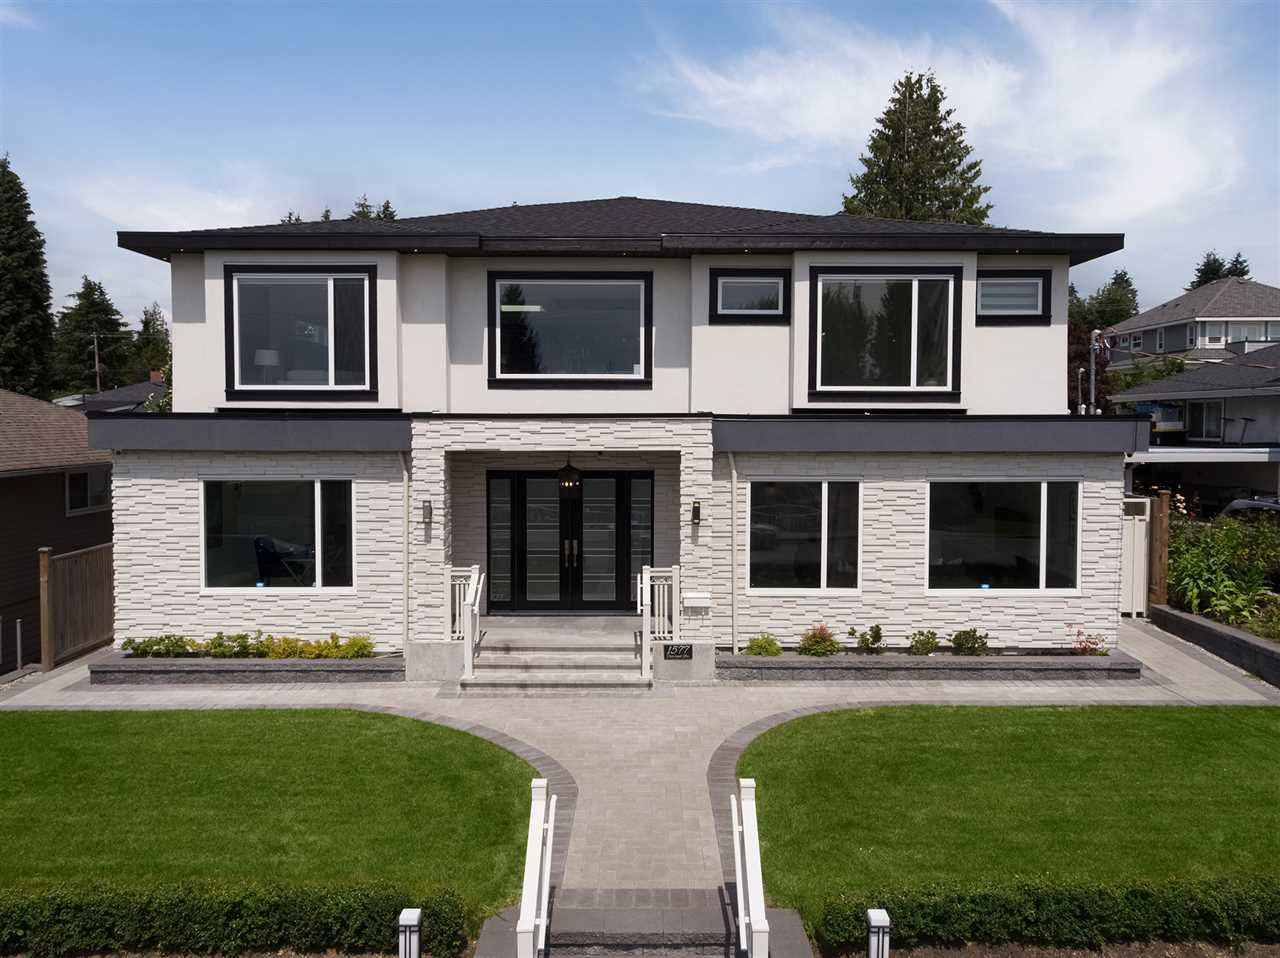 Main Photo: 1577 CHARLAND Avenue in Coquitlam: Central Coquitlam House for sale : MLS®# R2501389